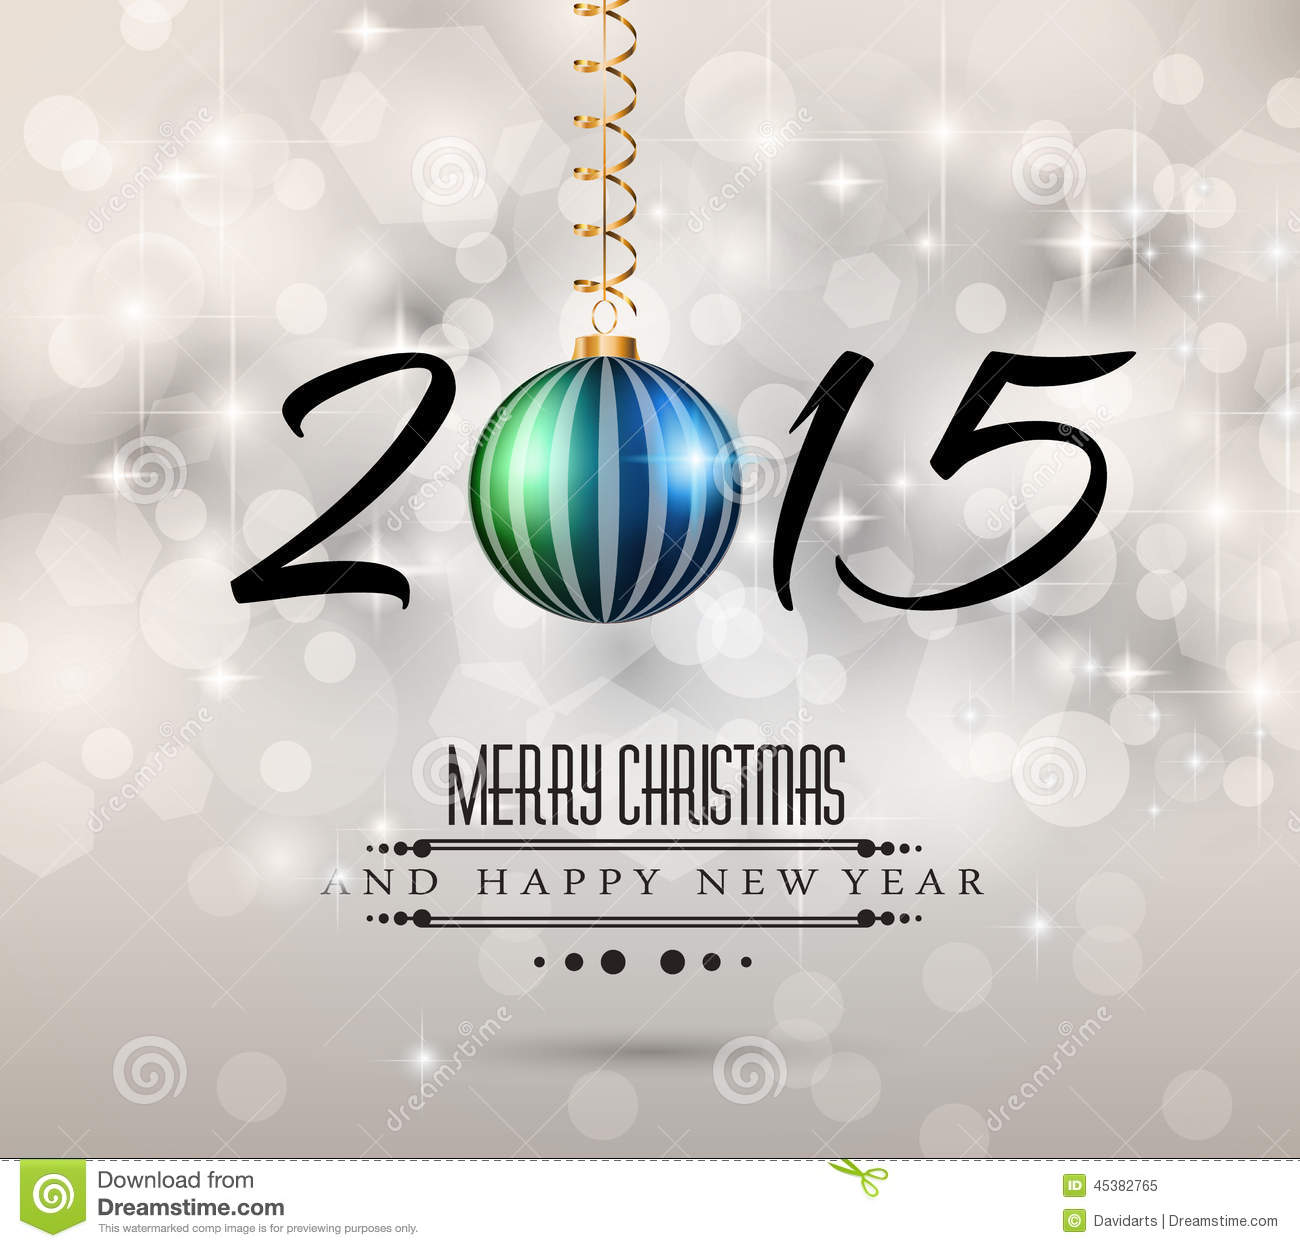 2015 Merry Christmas And Happy New Year Flyer Stock Vector ...